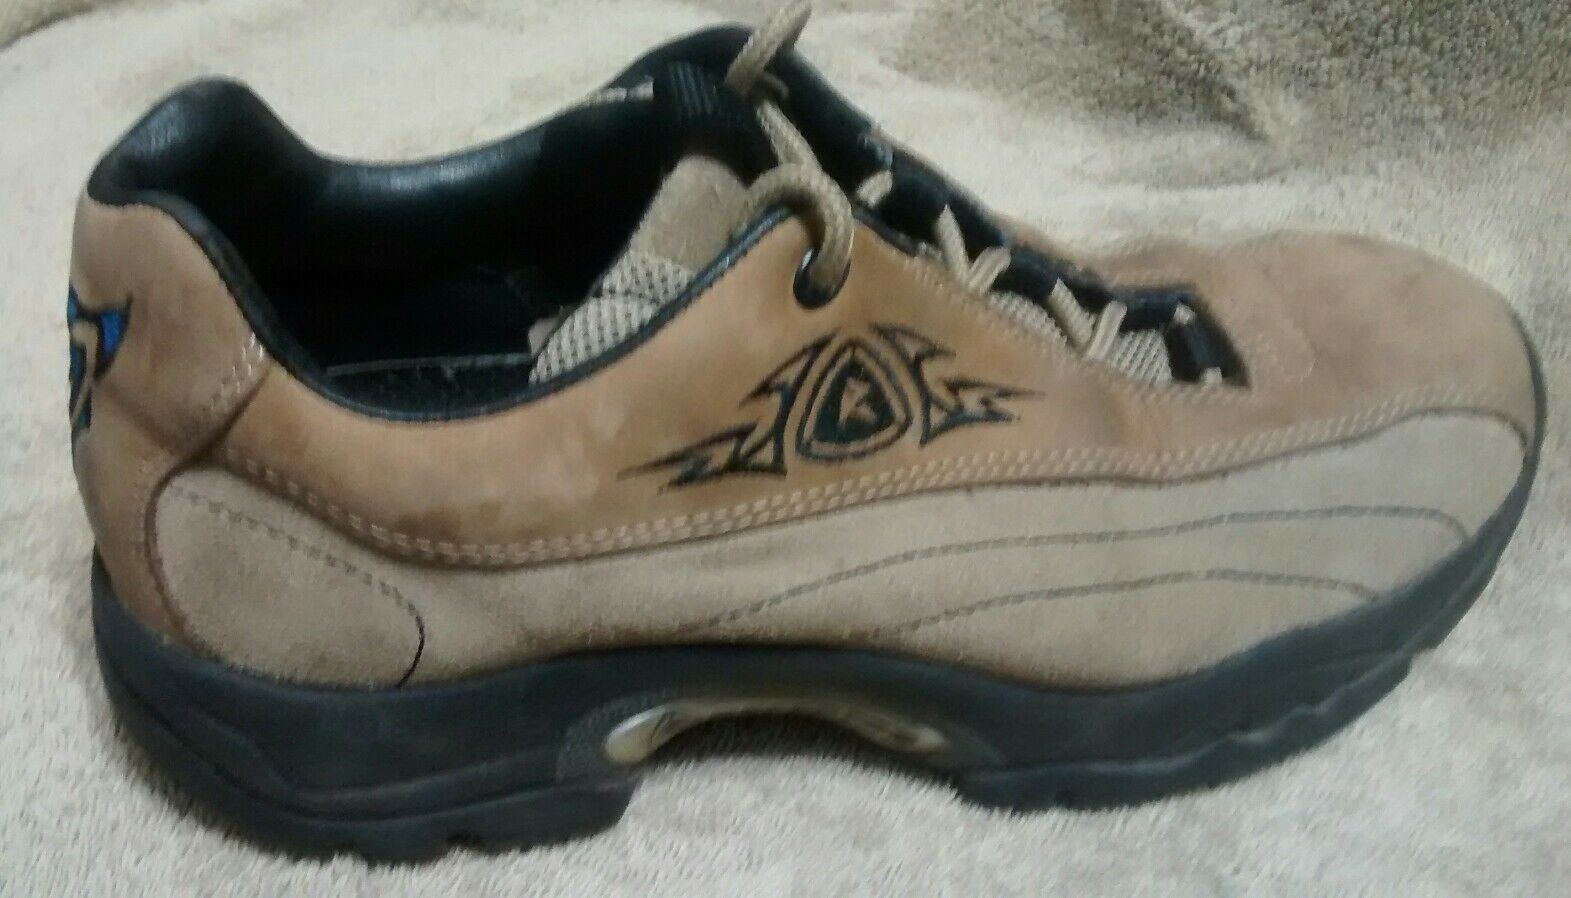 ECCO Receptor Bicycle Toe Hiking Trail shoes Women's US 5 1 2